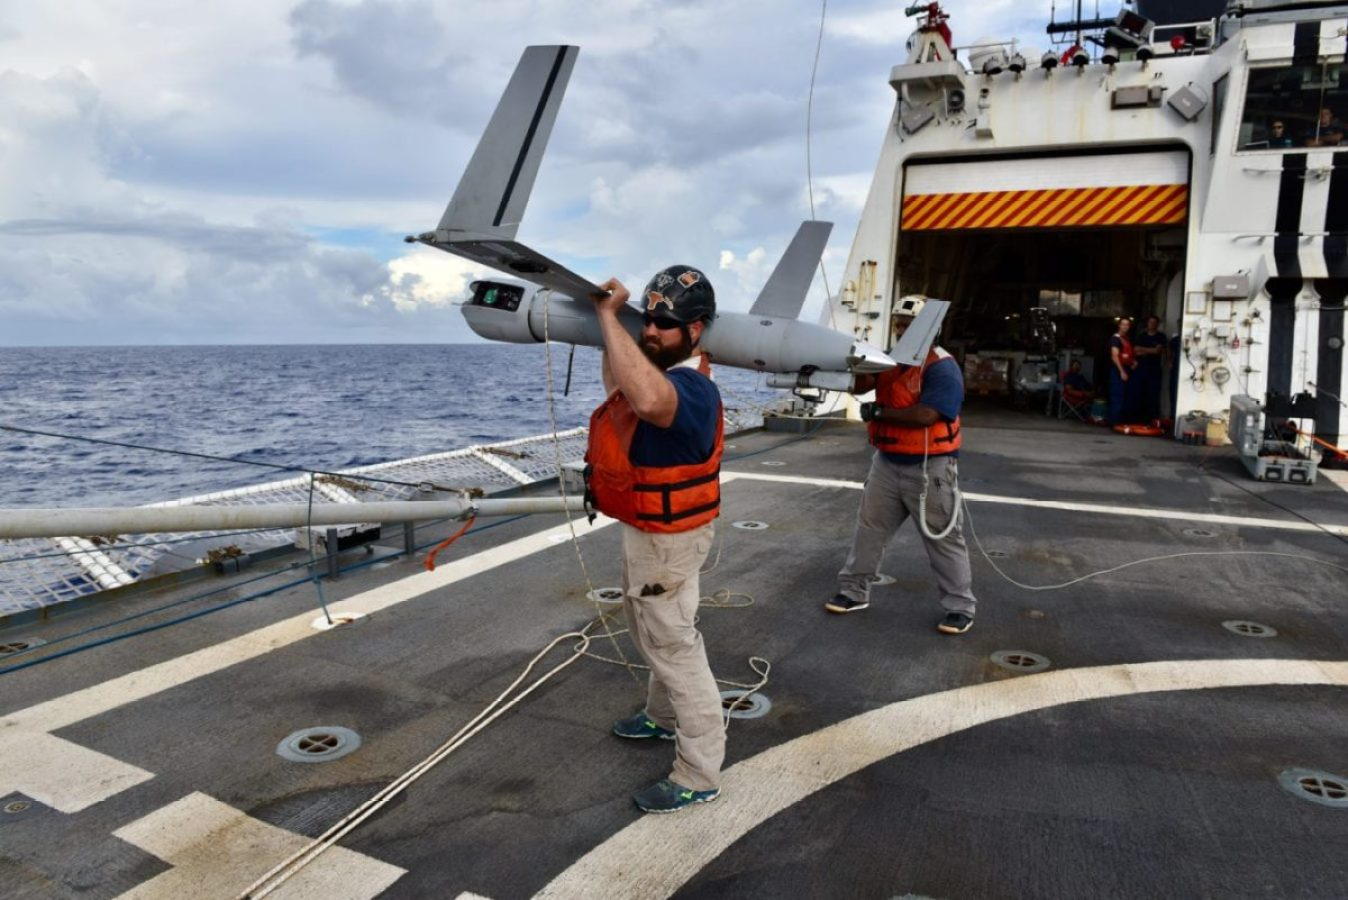 Mike McCord, Scan Eagle site lead, and Technician Dwight Smith, both of Dallas, recover a Small Unmanned Aerial System or drone aboard USCGC Stratton, in the Pacific, Oct. 31, 2019. The cutter's crew spent half of 2019 underway in support of joint operations in the Pacific. (U.S. Coast Guard photo by Chief Petty Officer Sara Muir/Released)